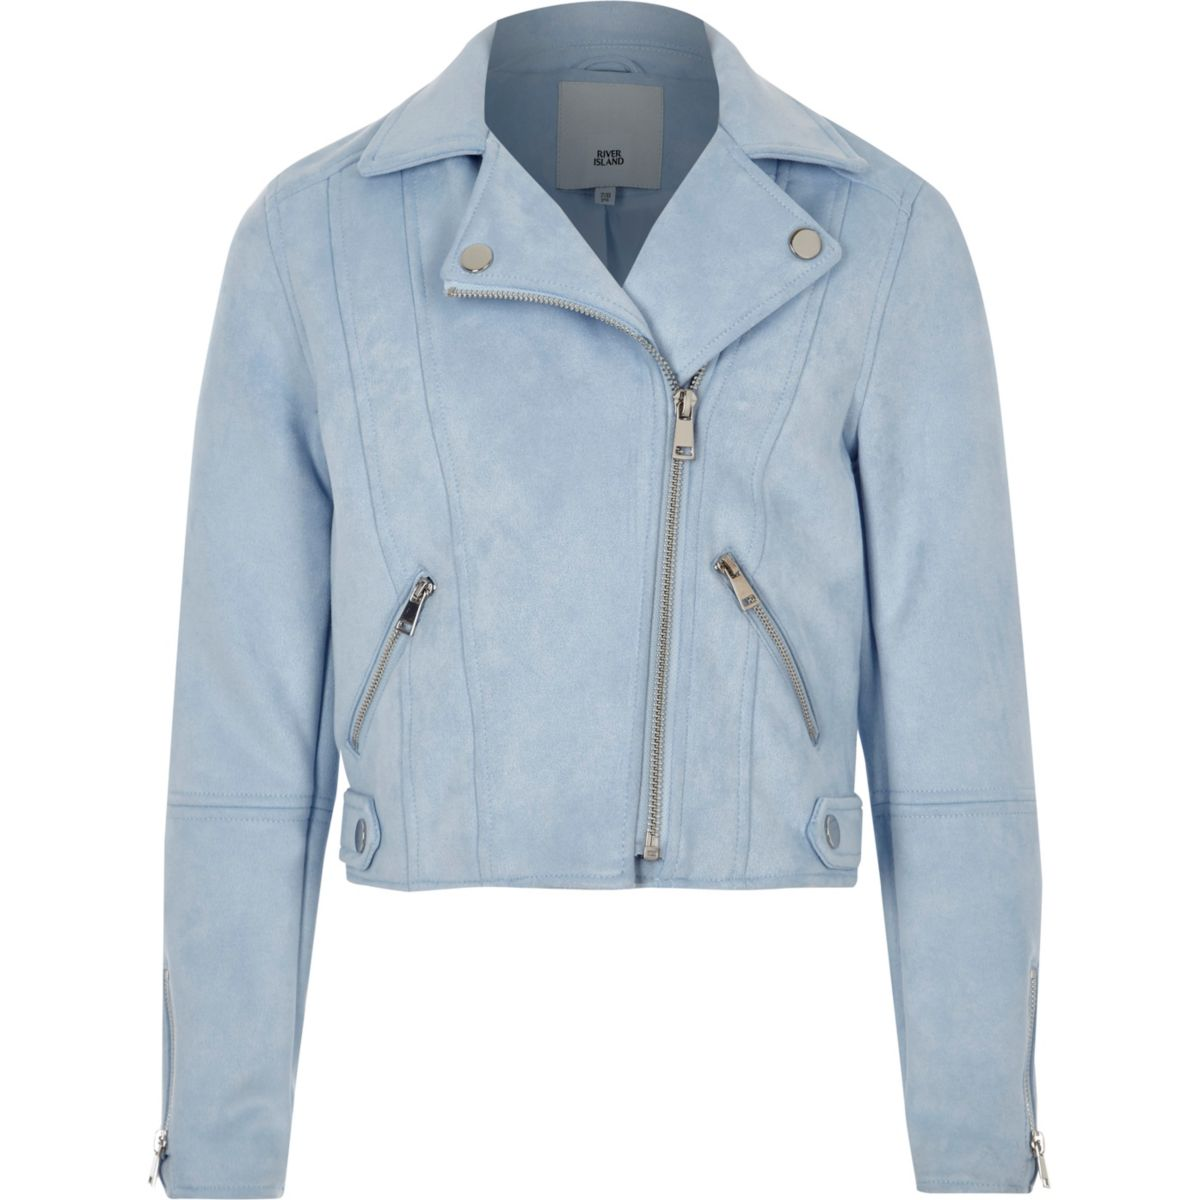 Girls Blue Faux Suede Biker Jacket - Jackets - Coats U0026 Jackets - Girls